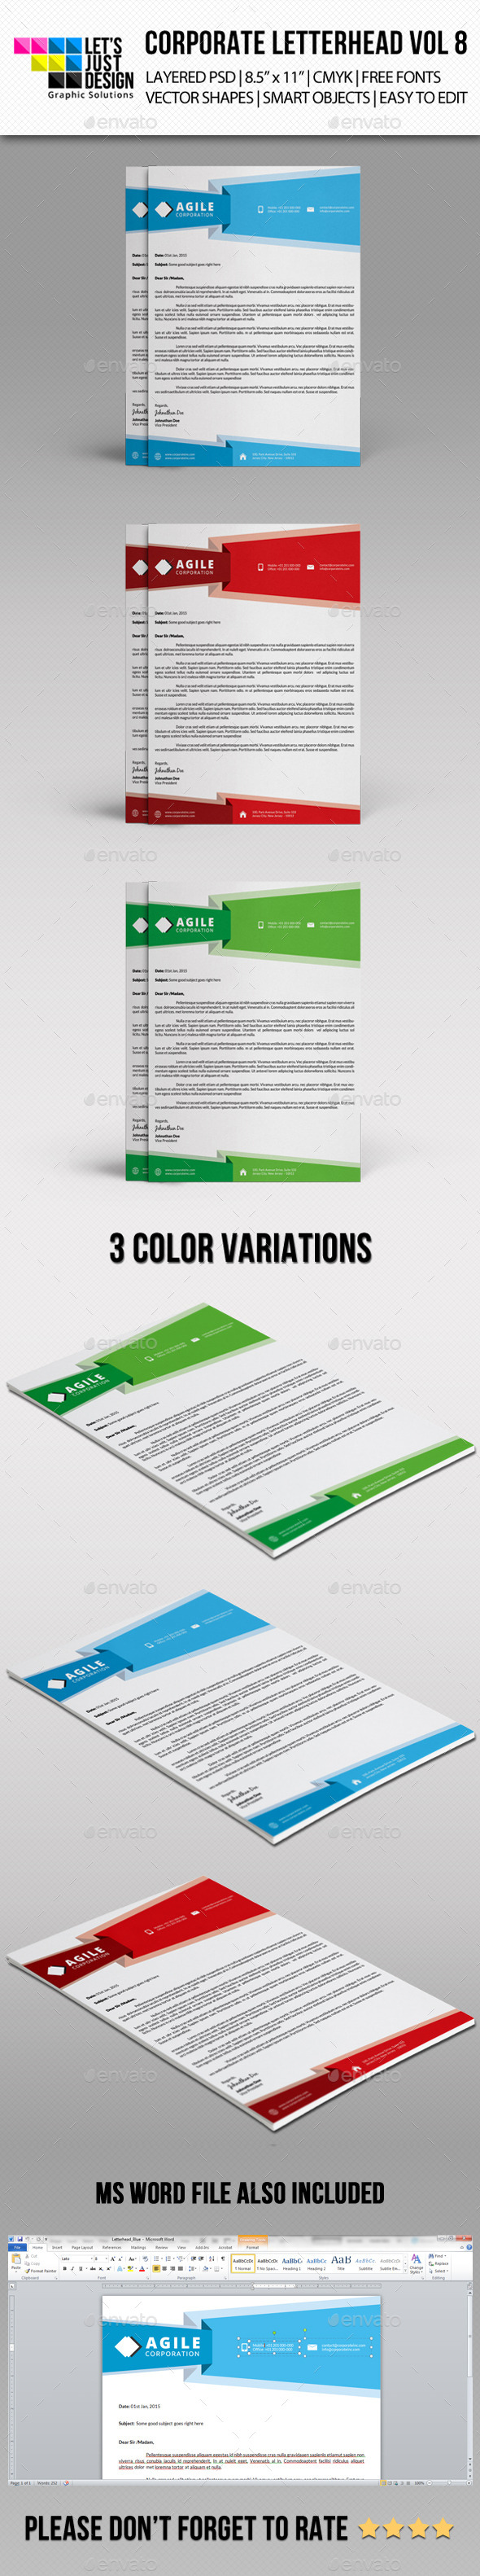 Corporate Letterhead Vol 8 - Stationery Print Templates